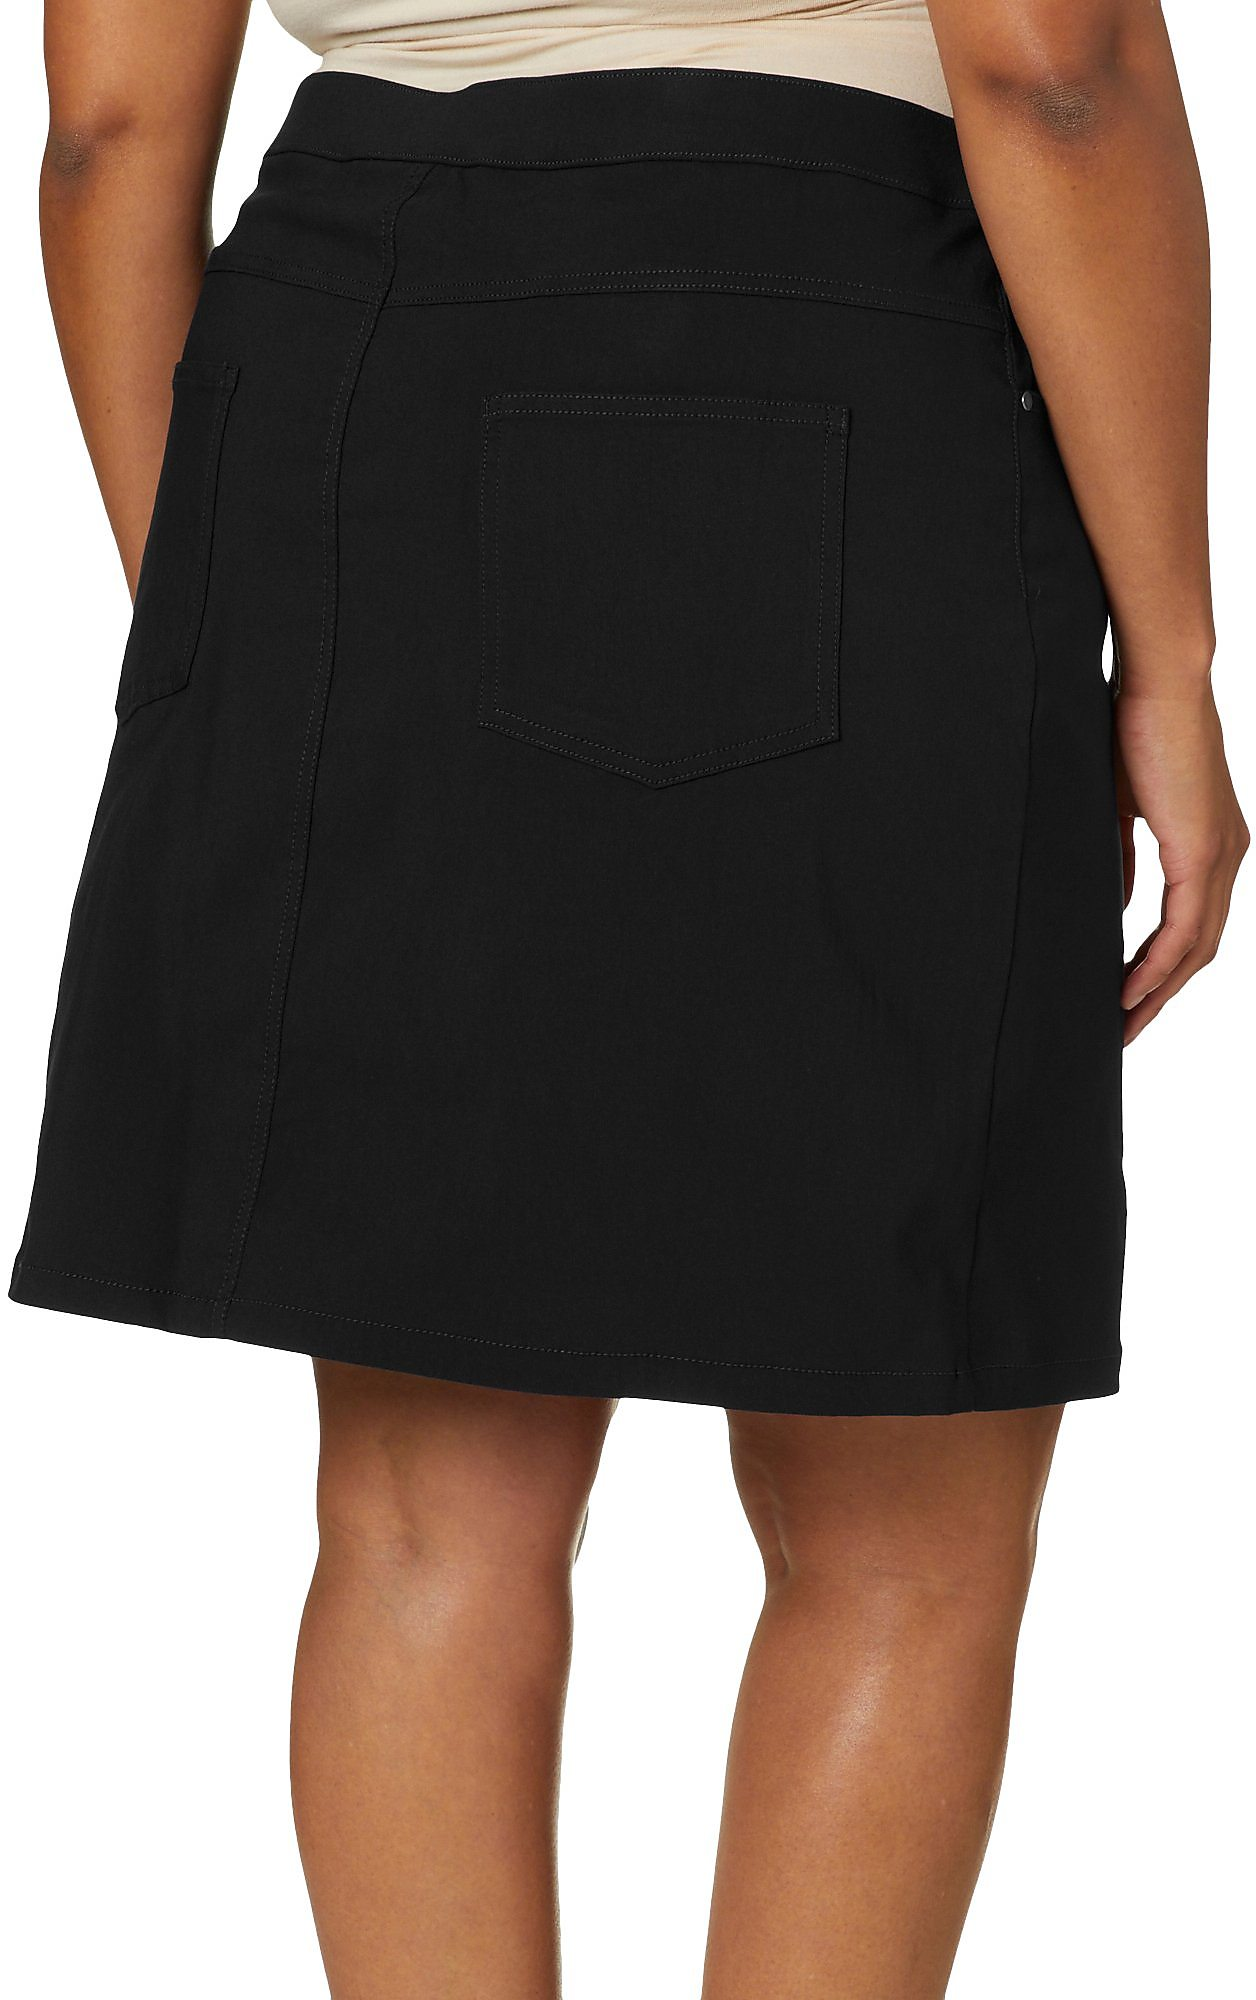 Hearts of Palm Womens Essential Solid Tech Stretch Skort